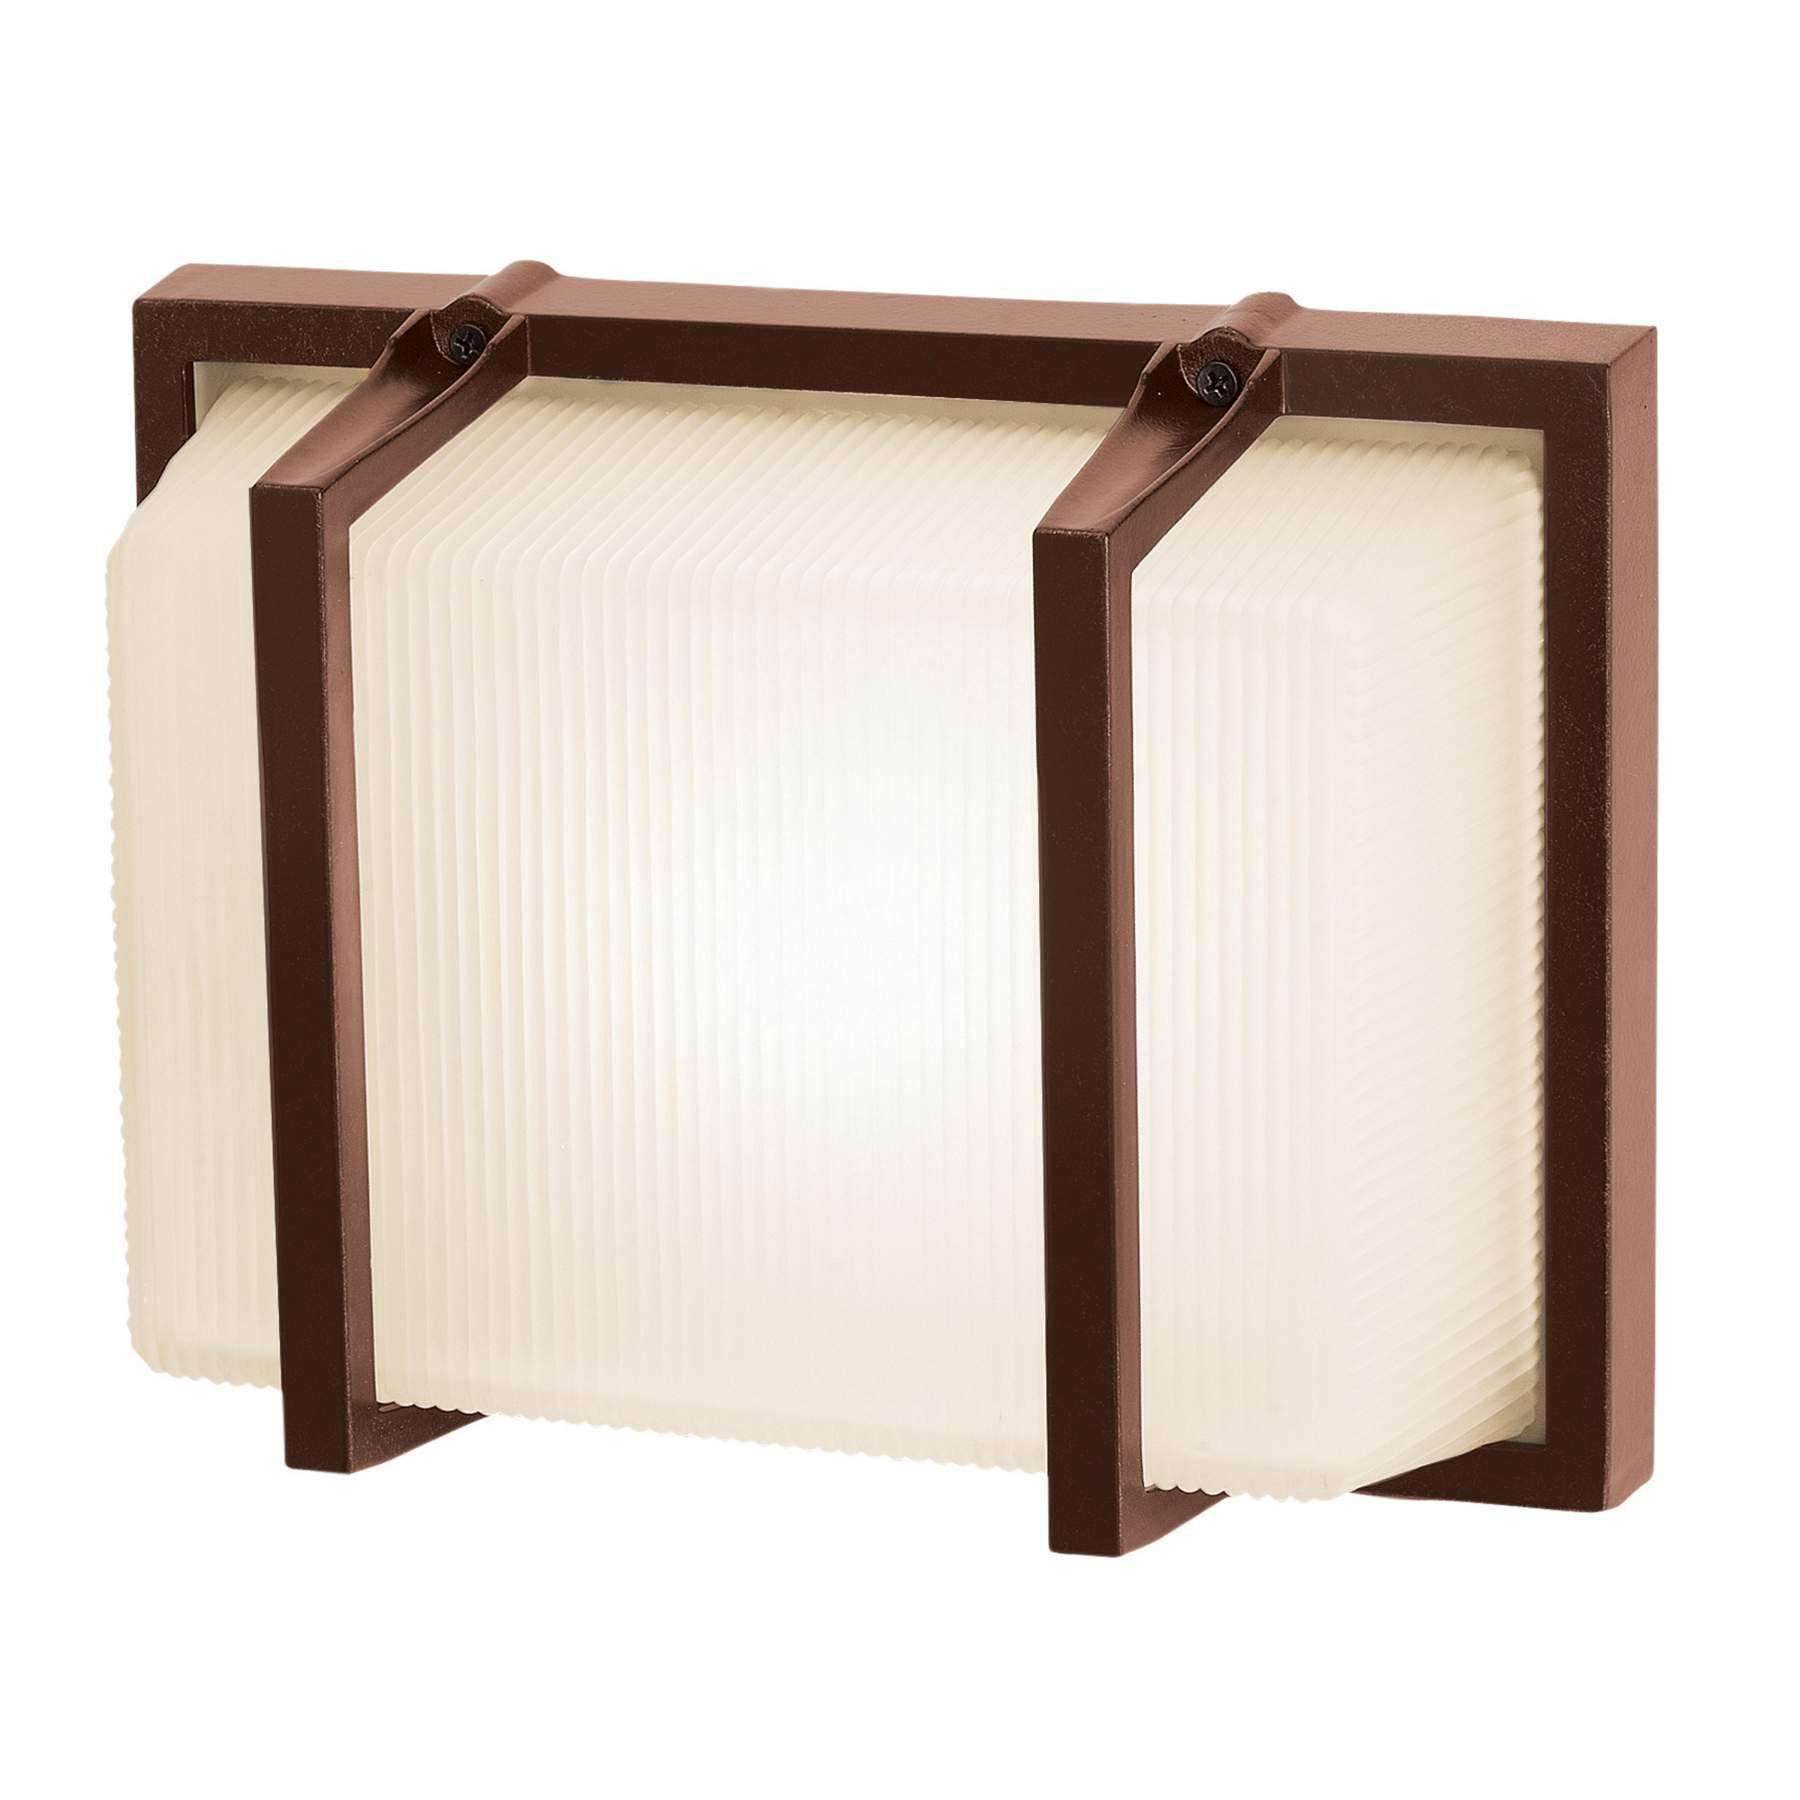 Access Lighting 20335MG-BRZ/RFR Neptune Wet Location Wall Fixture in Bronze finish with Ribbed Frosted glass